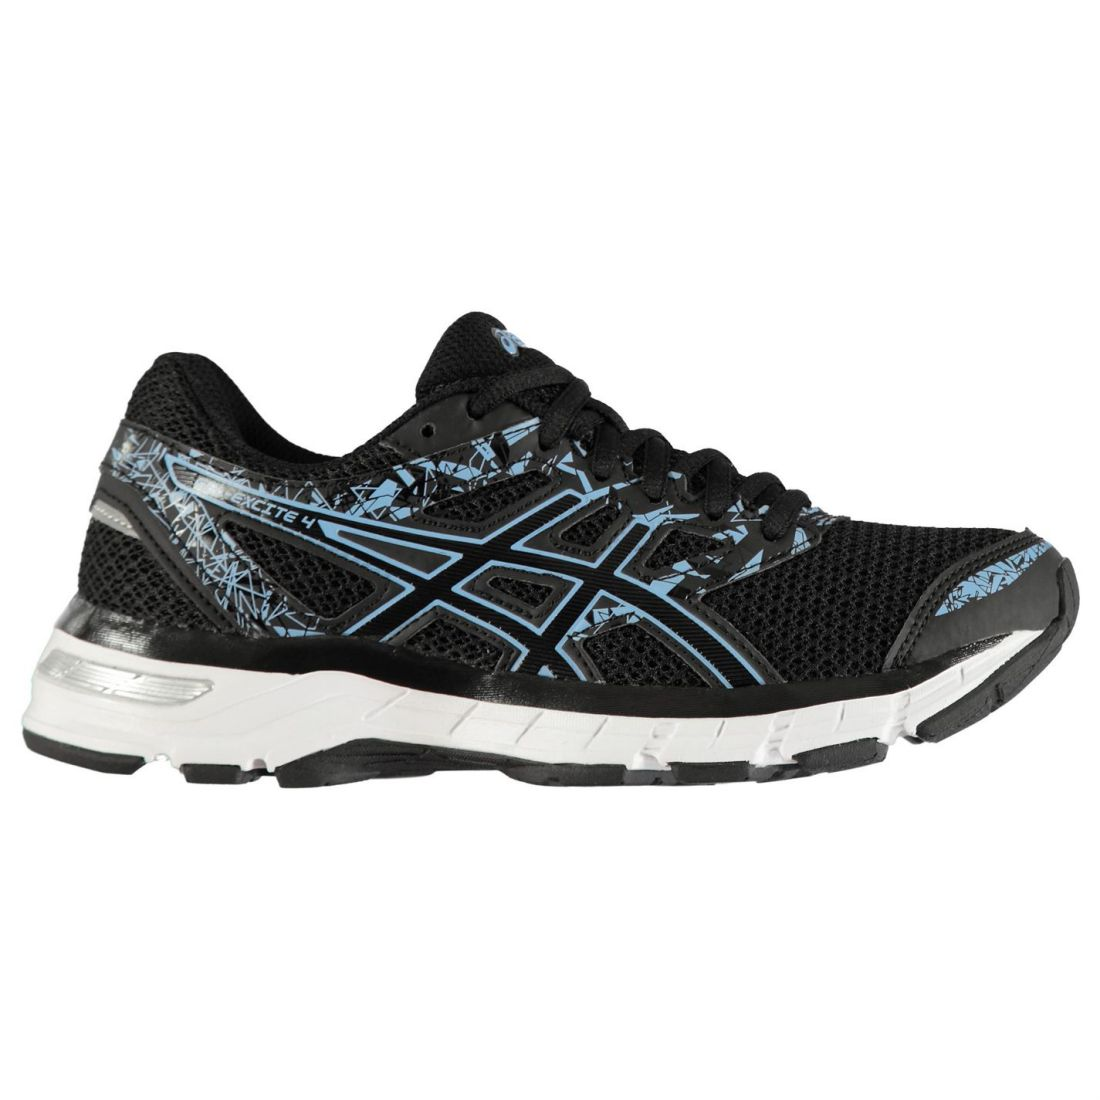 Asics Gel Excite 4 4 4 Running shoes Ladies Road Laces Fastened Ventilated Padded 4aeeba